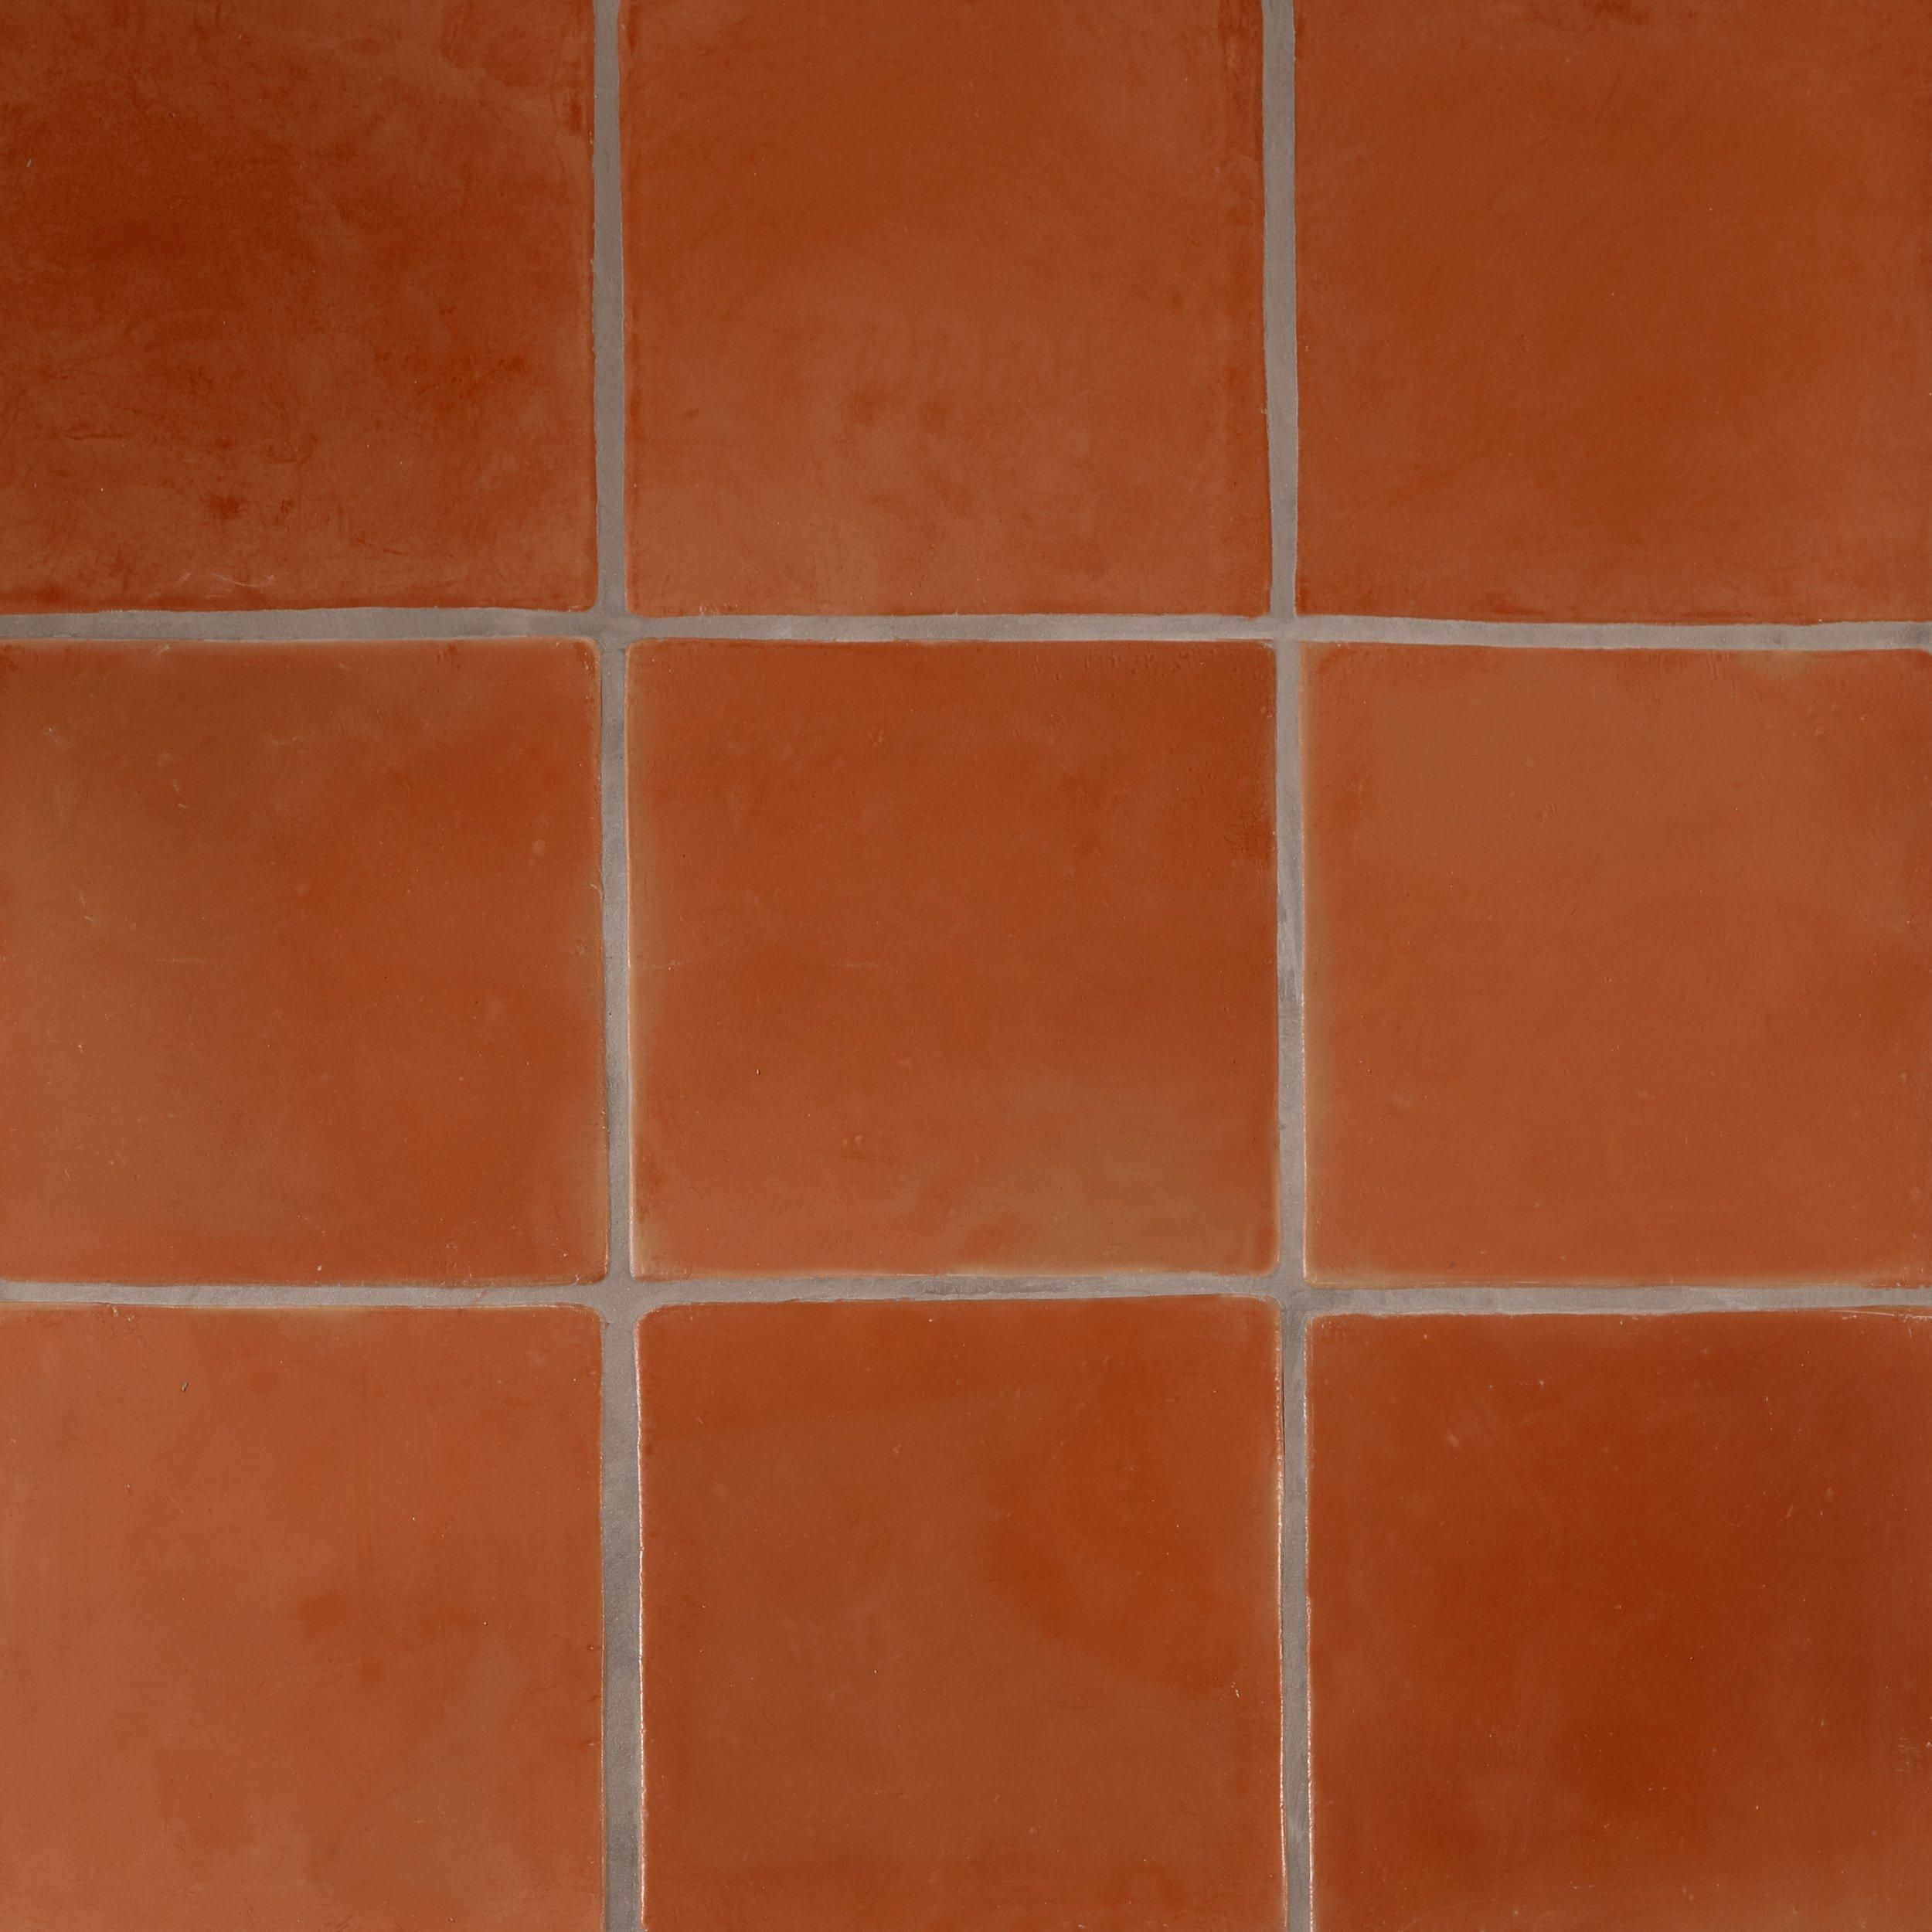 Super Sealed Saltillo Tile In 2020 Saltillo Tile Flooring Red Tile Floor